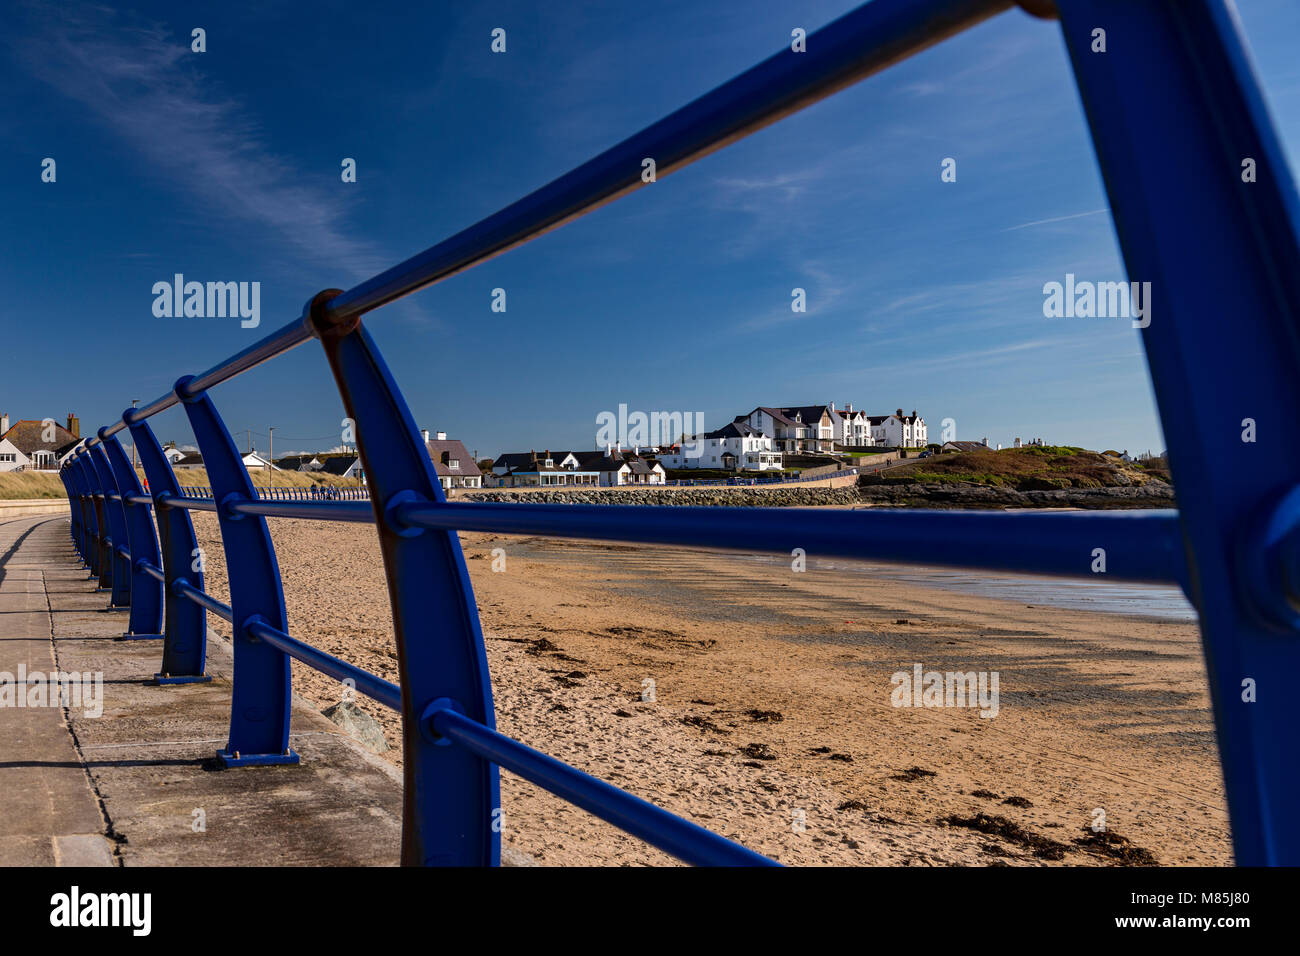 Railings on the promenade at Trearddur Bay, Anglesey on the North Wales coast - Stock Image